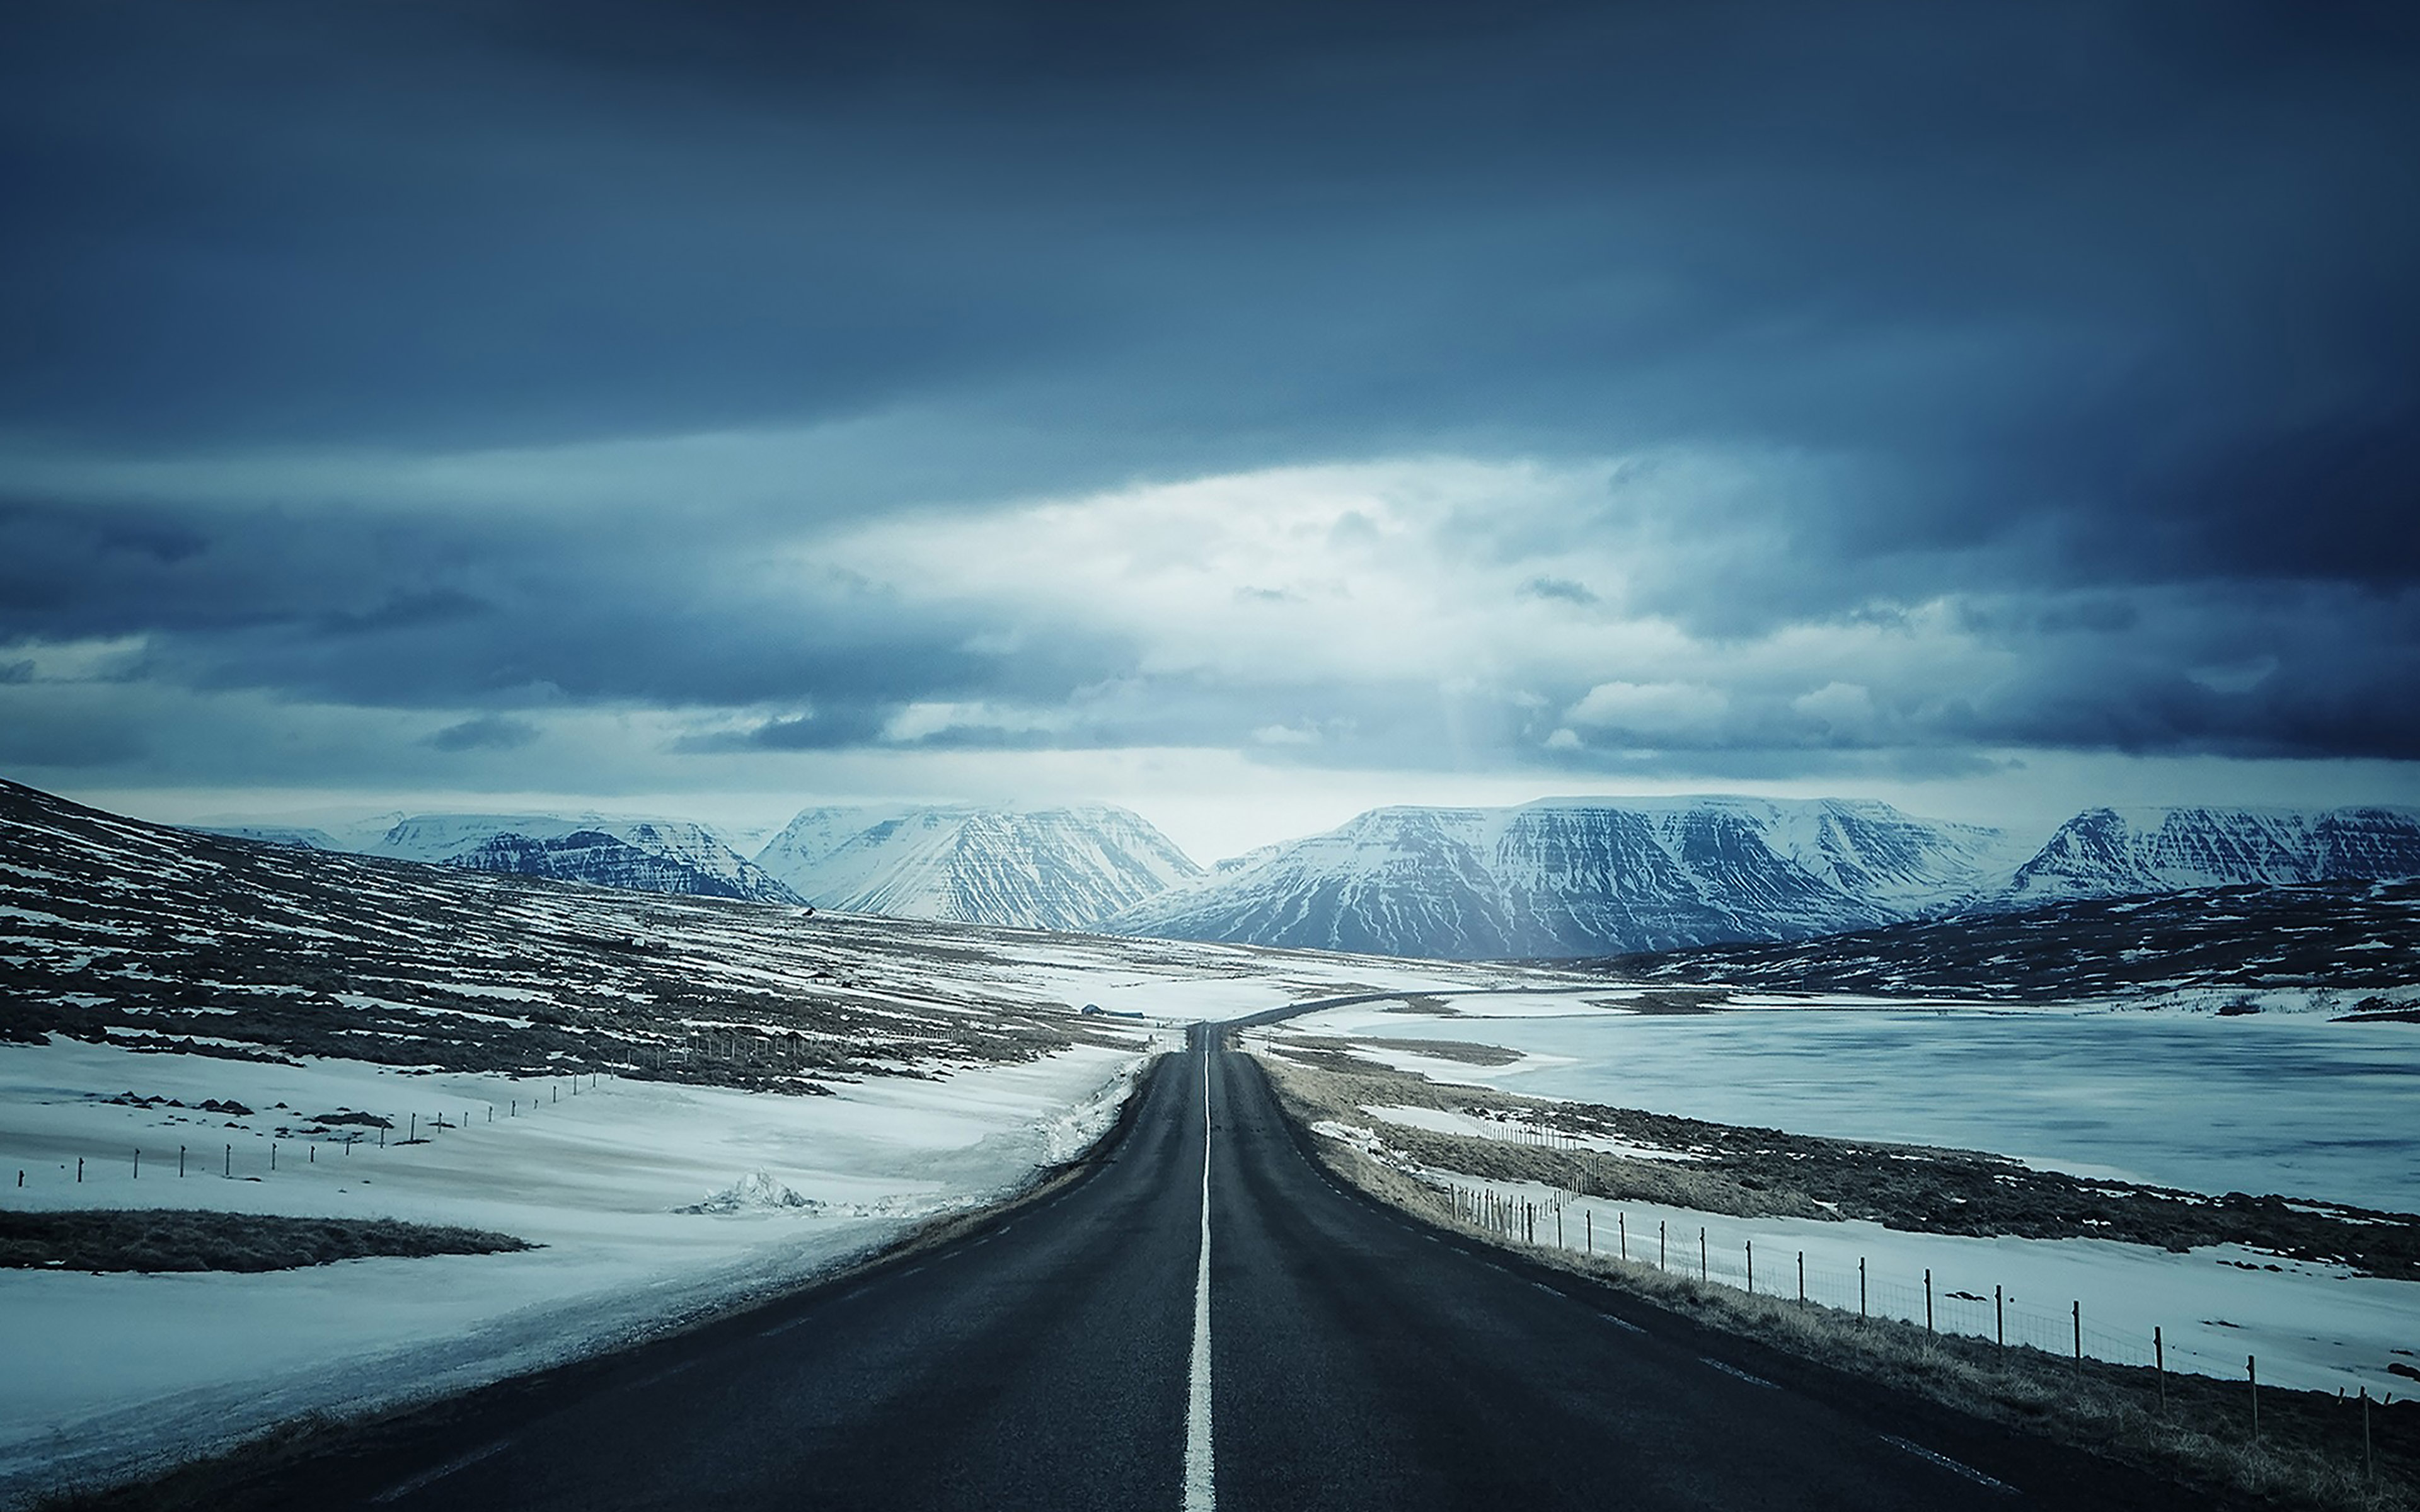 Ipad Wallpapers Hd Nature: Ml47-road-to-snow-mountain-nature-winter